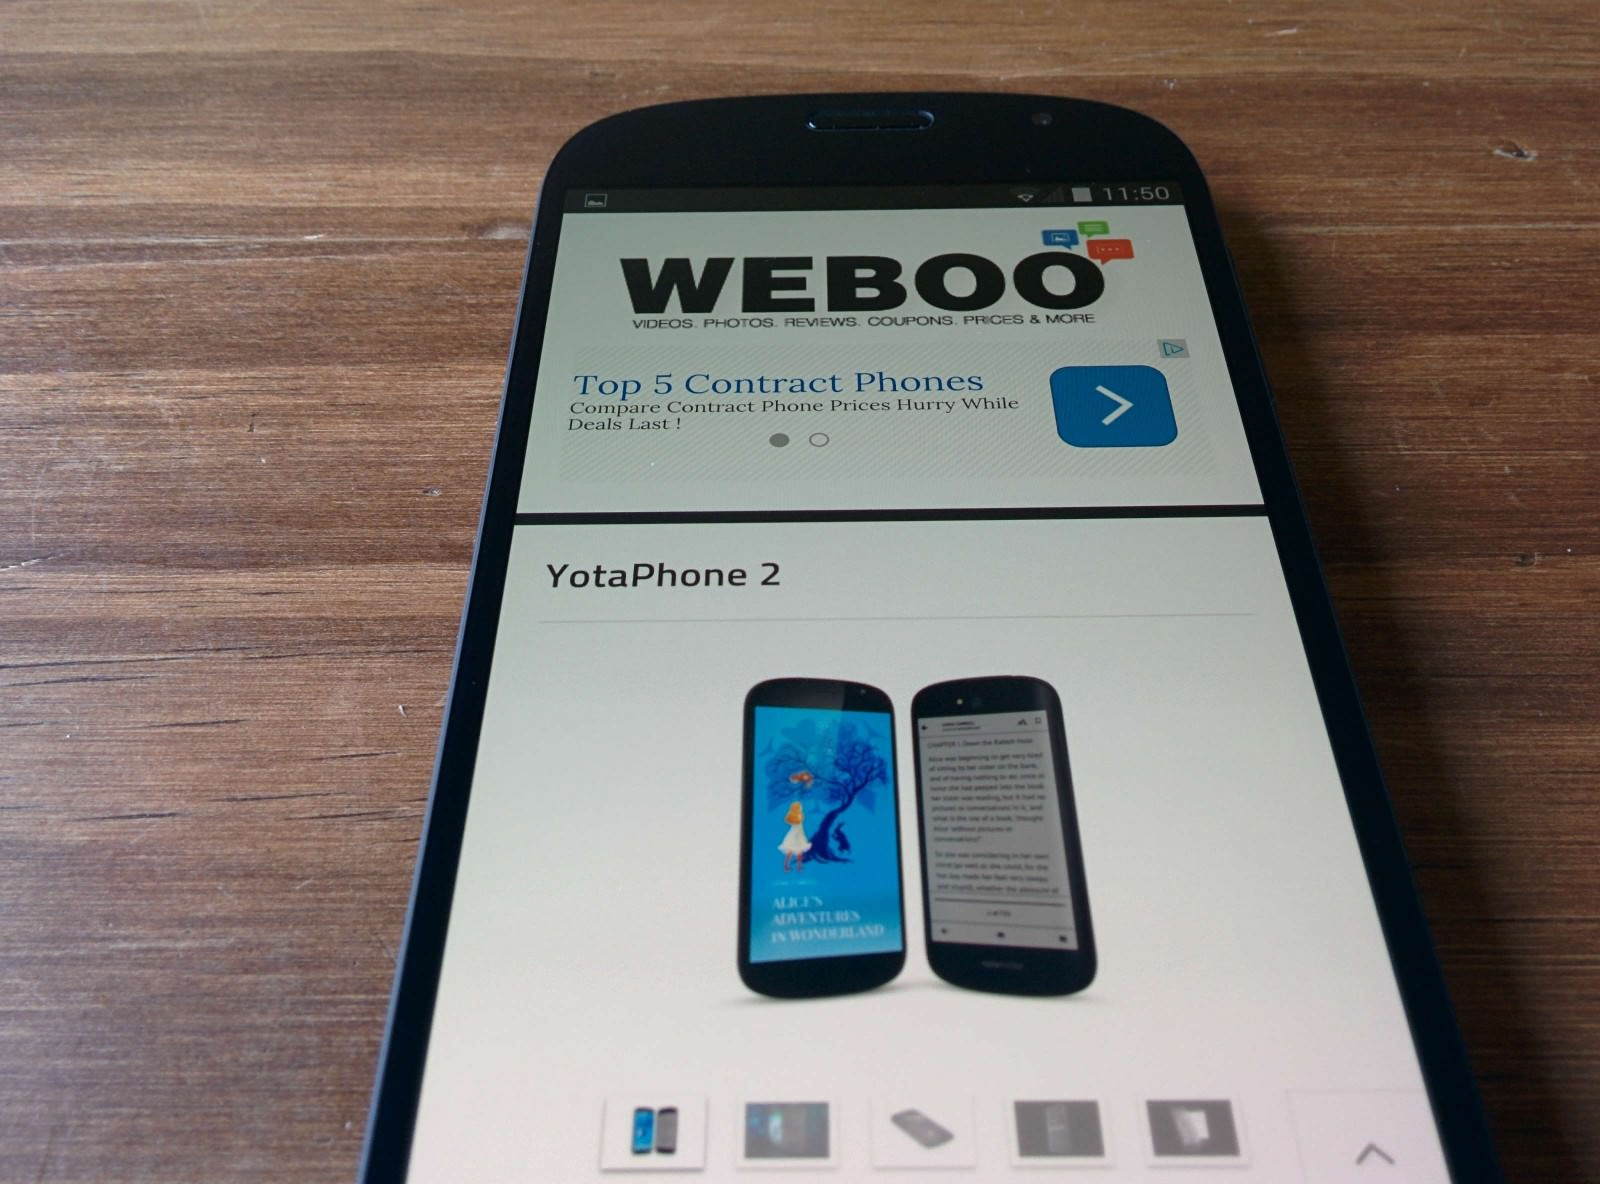 yotaphone-2-review-display-weboo-co-2